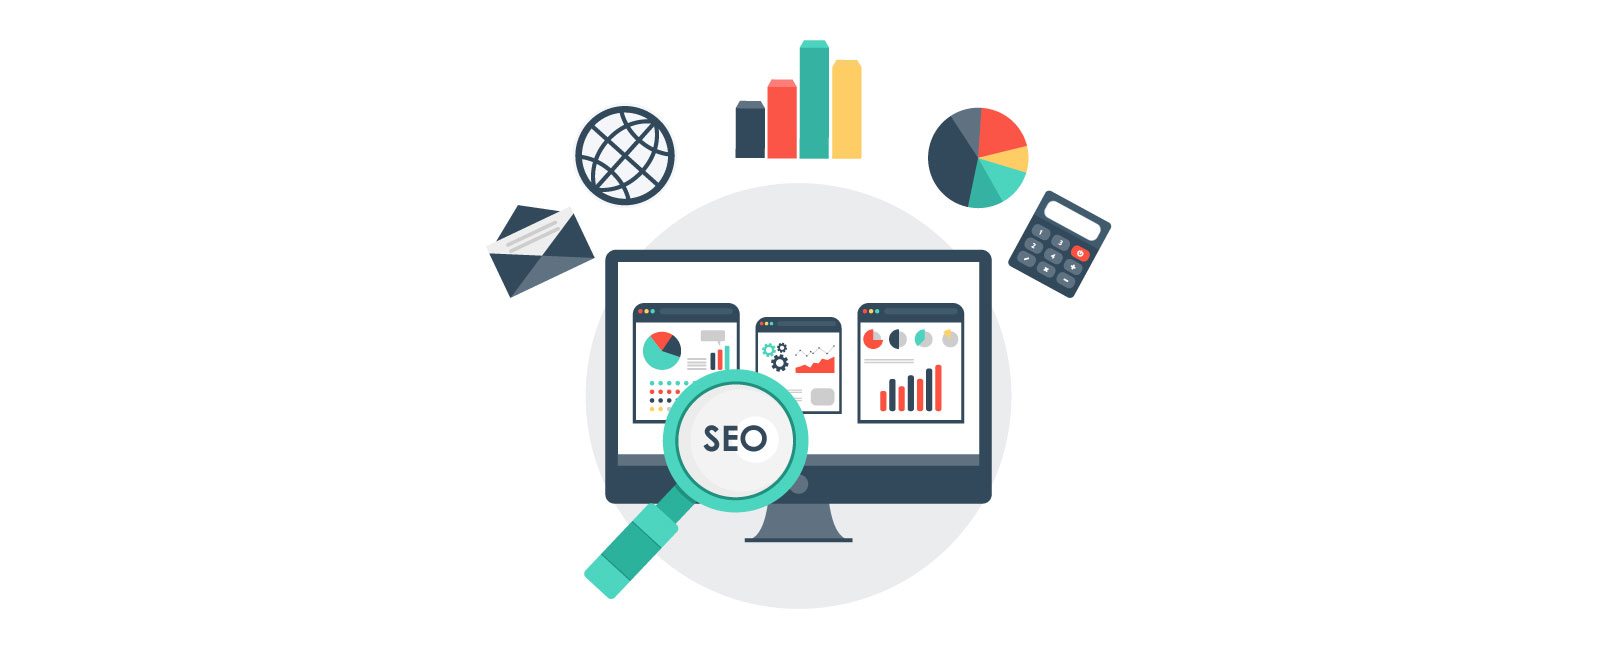 Google spara sui SEO, Analytics va verso il 100% not provided